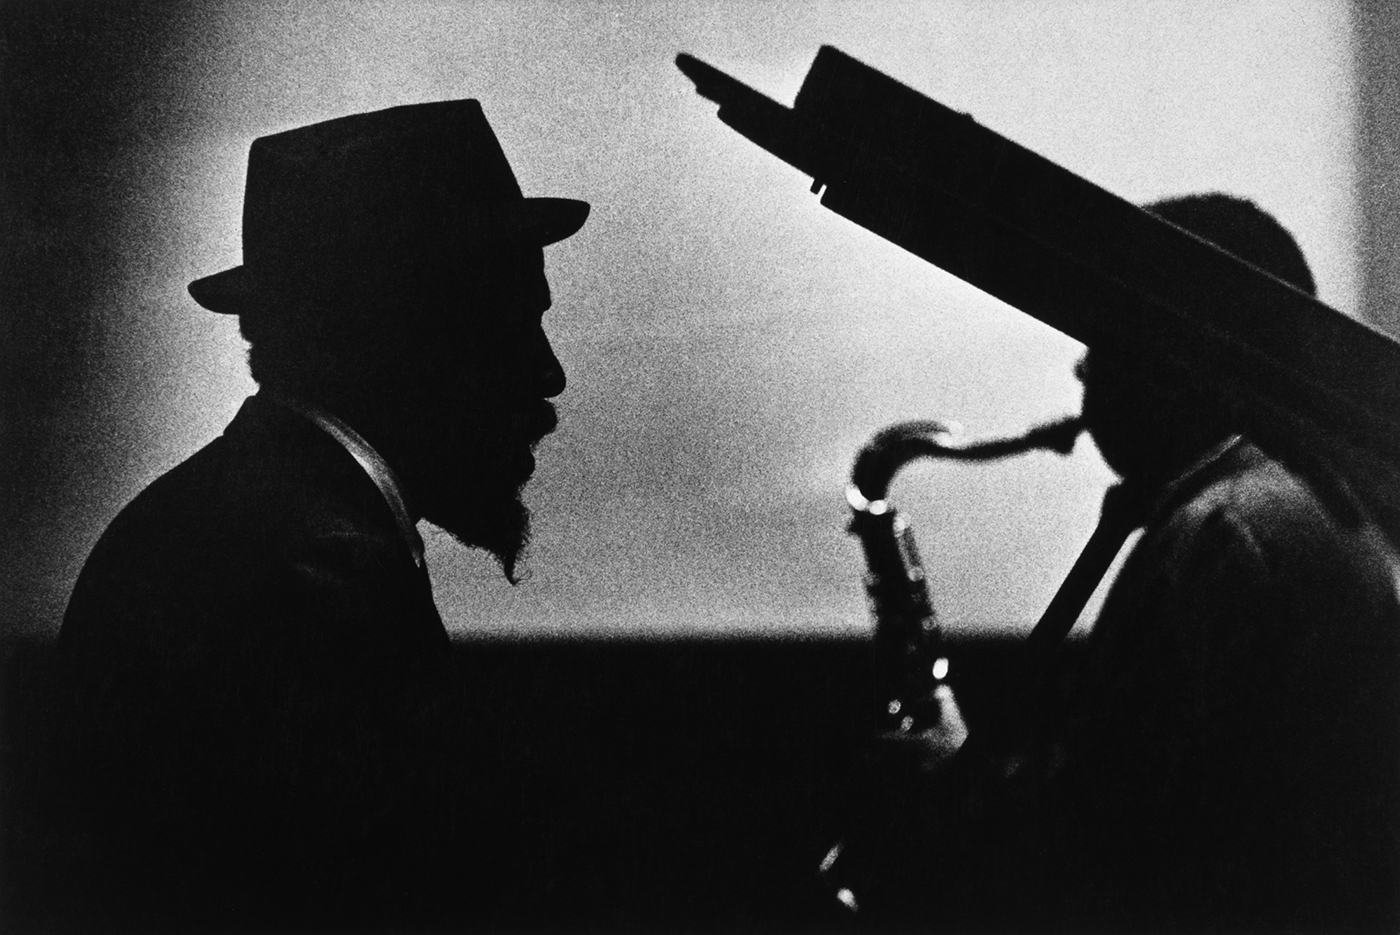 Thelonious Monk © Guiseppe Pino